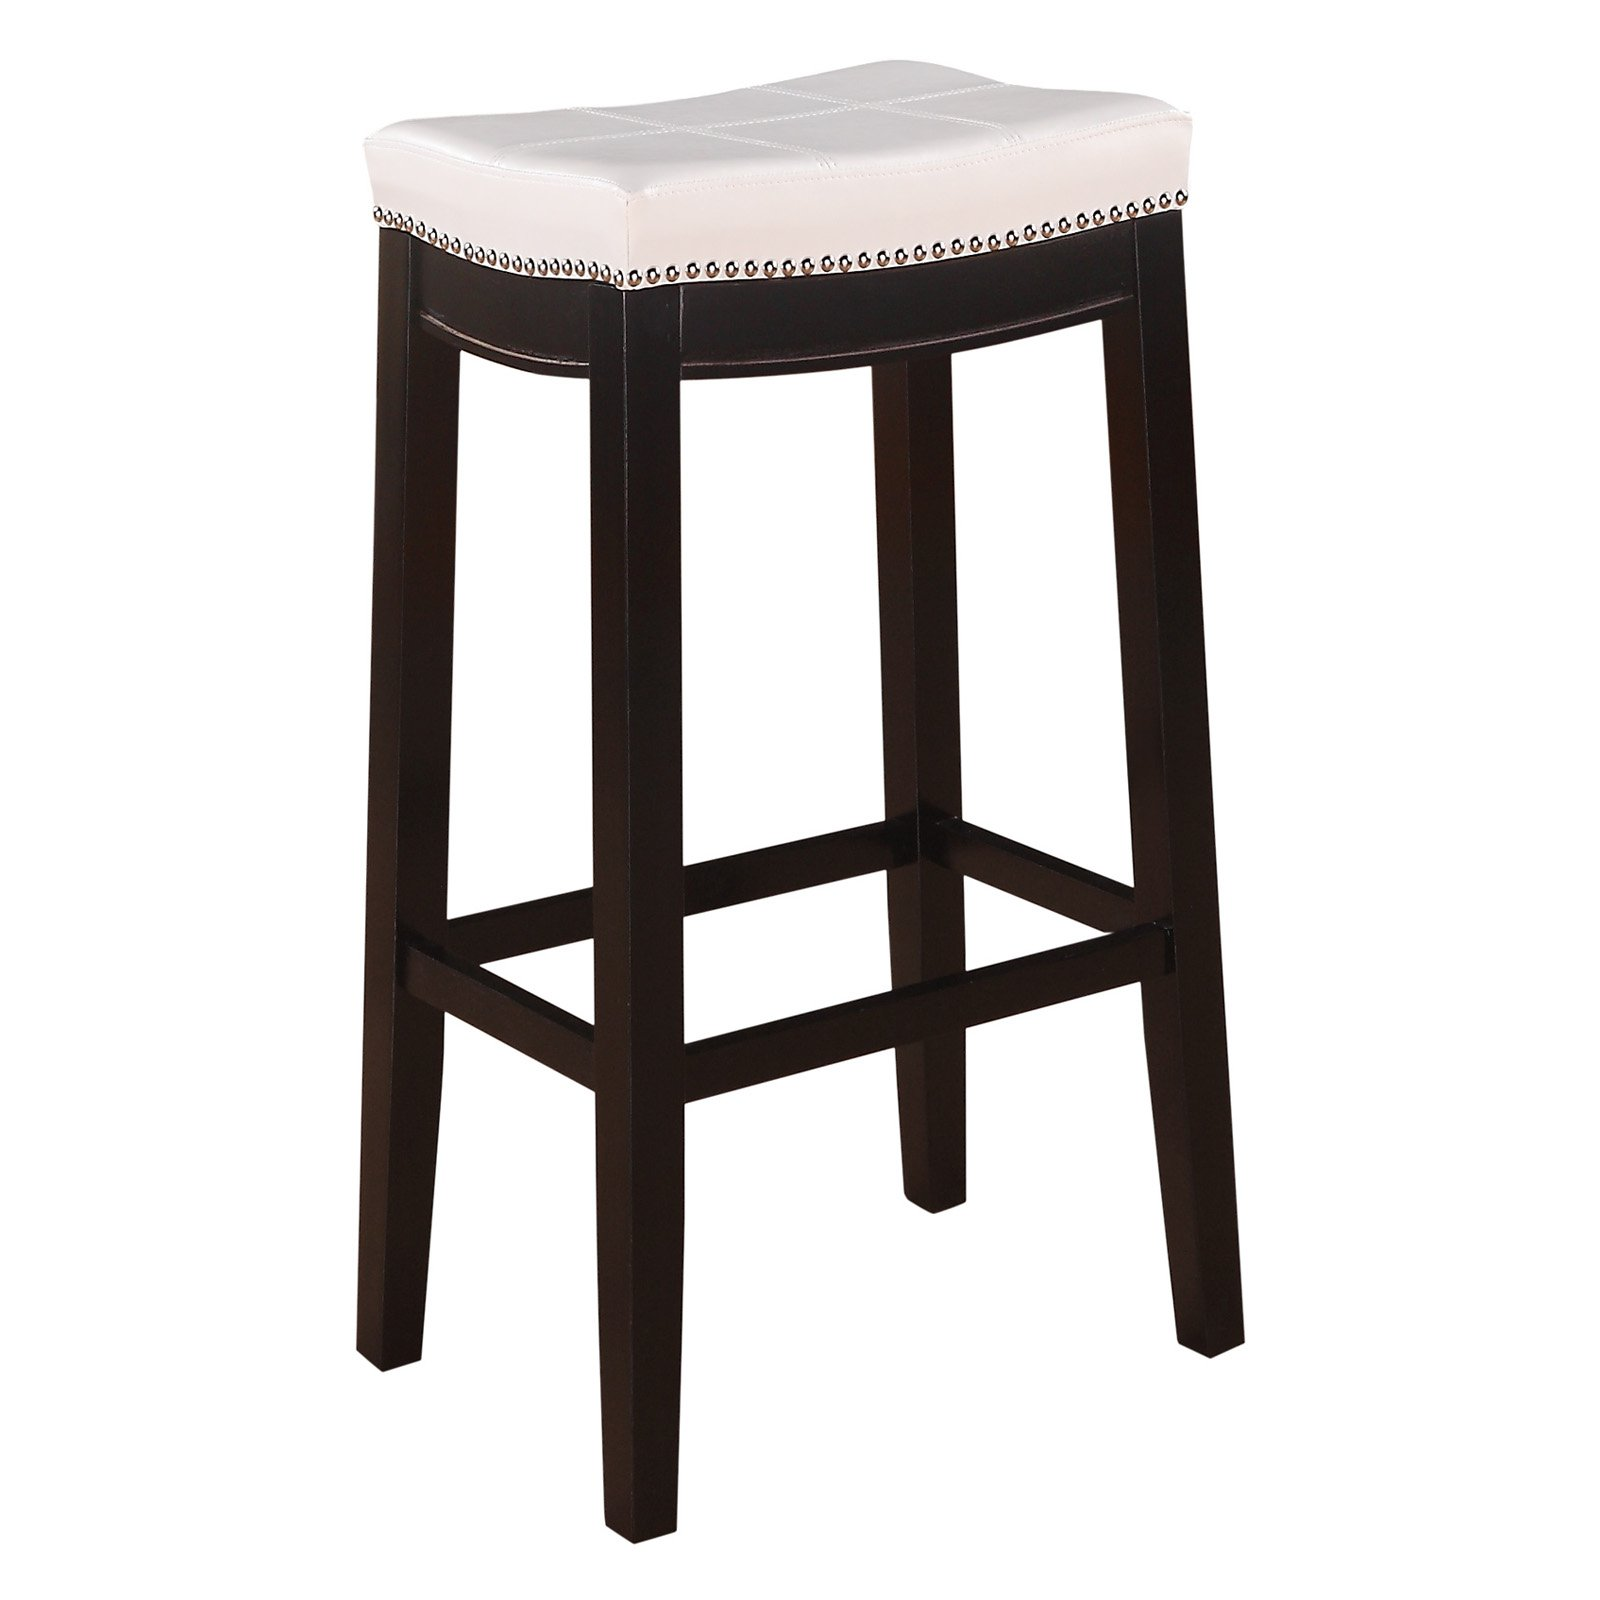 Linon Claridge Patches Bar Stool Mutliple Colors 32 Inch